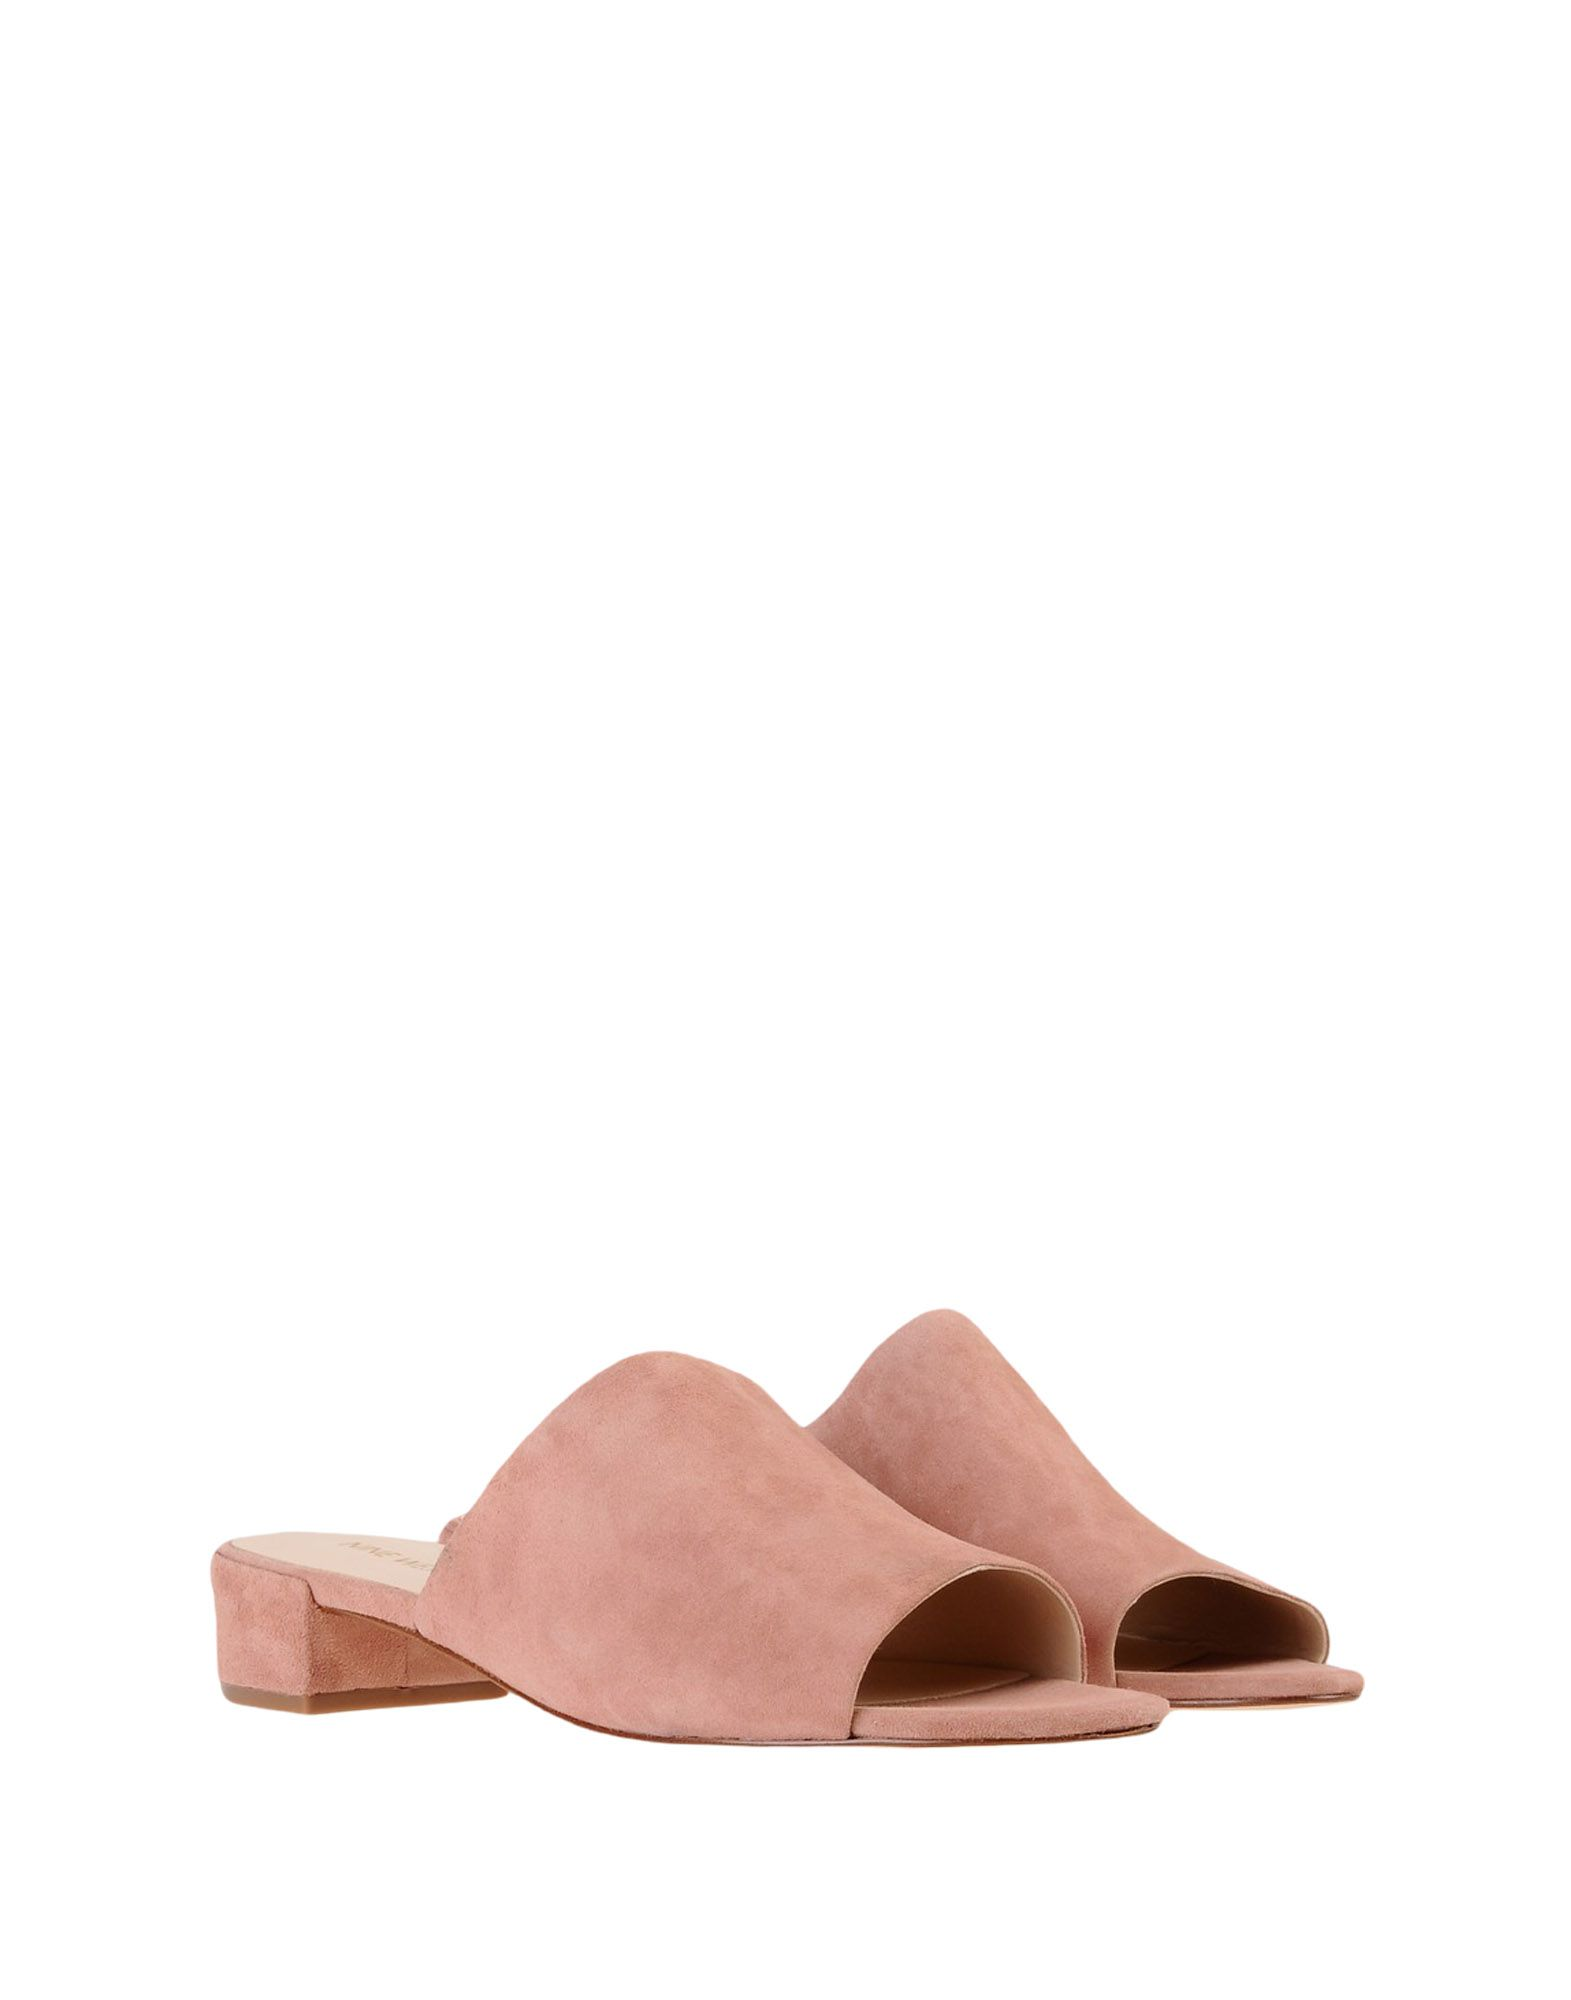 Sandales Nine West Raissa - Femme - Sandales Nine West sur